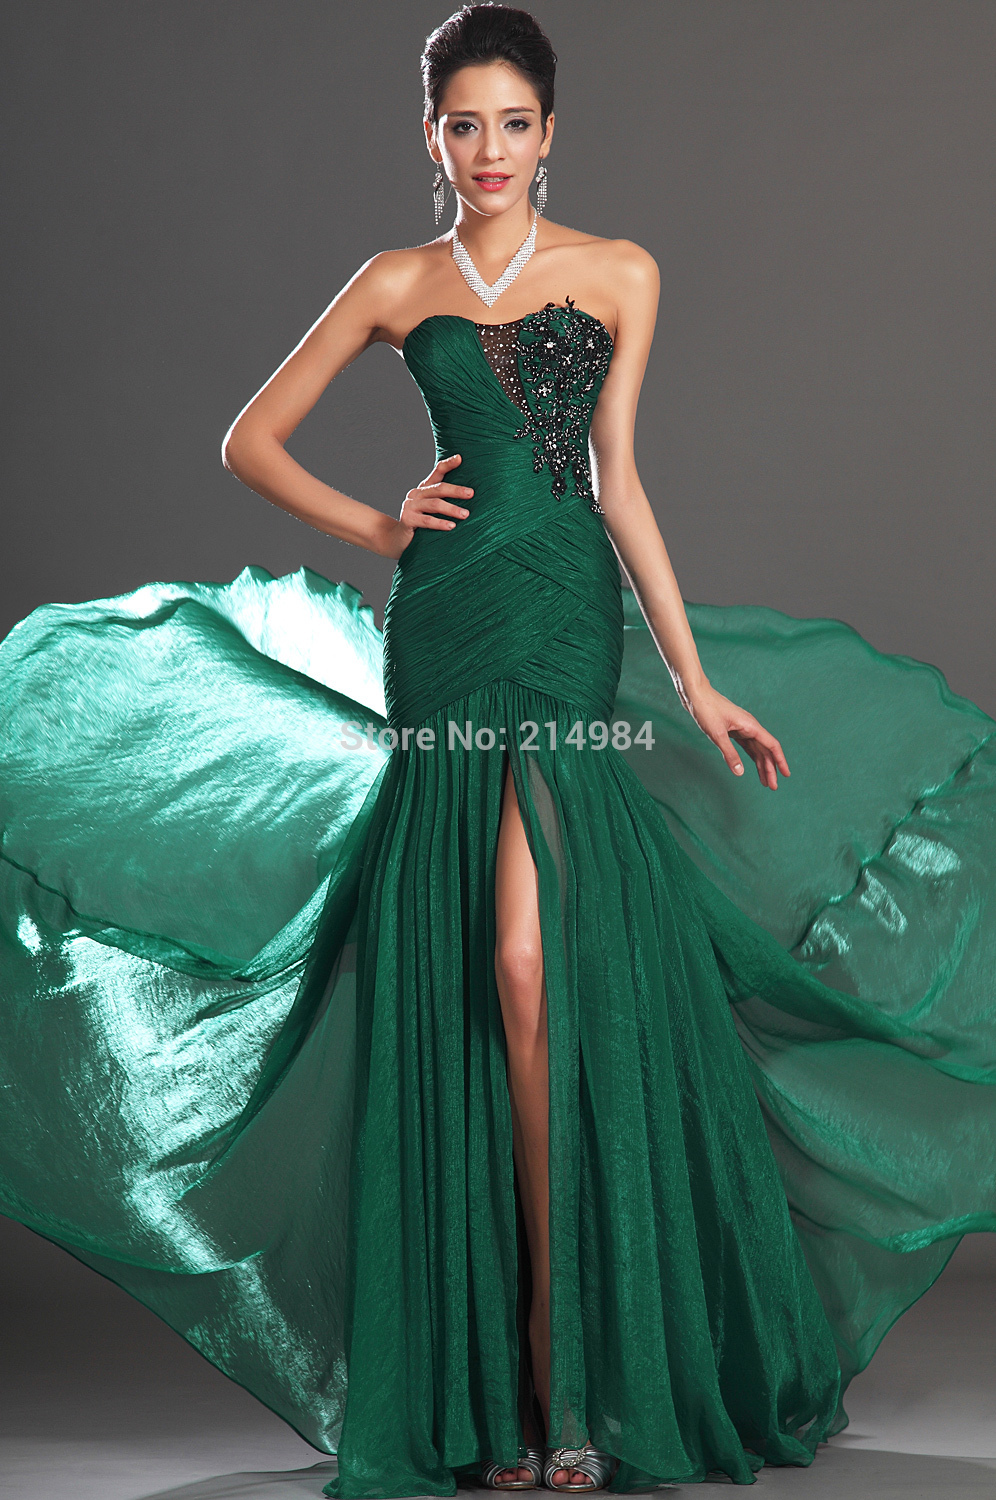 Free Shipping New Sexy Black Appliqued Dark Green Pleated Chiffon Mermaid  Evening Dress 2016 f920ee587171